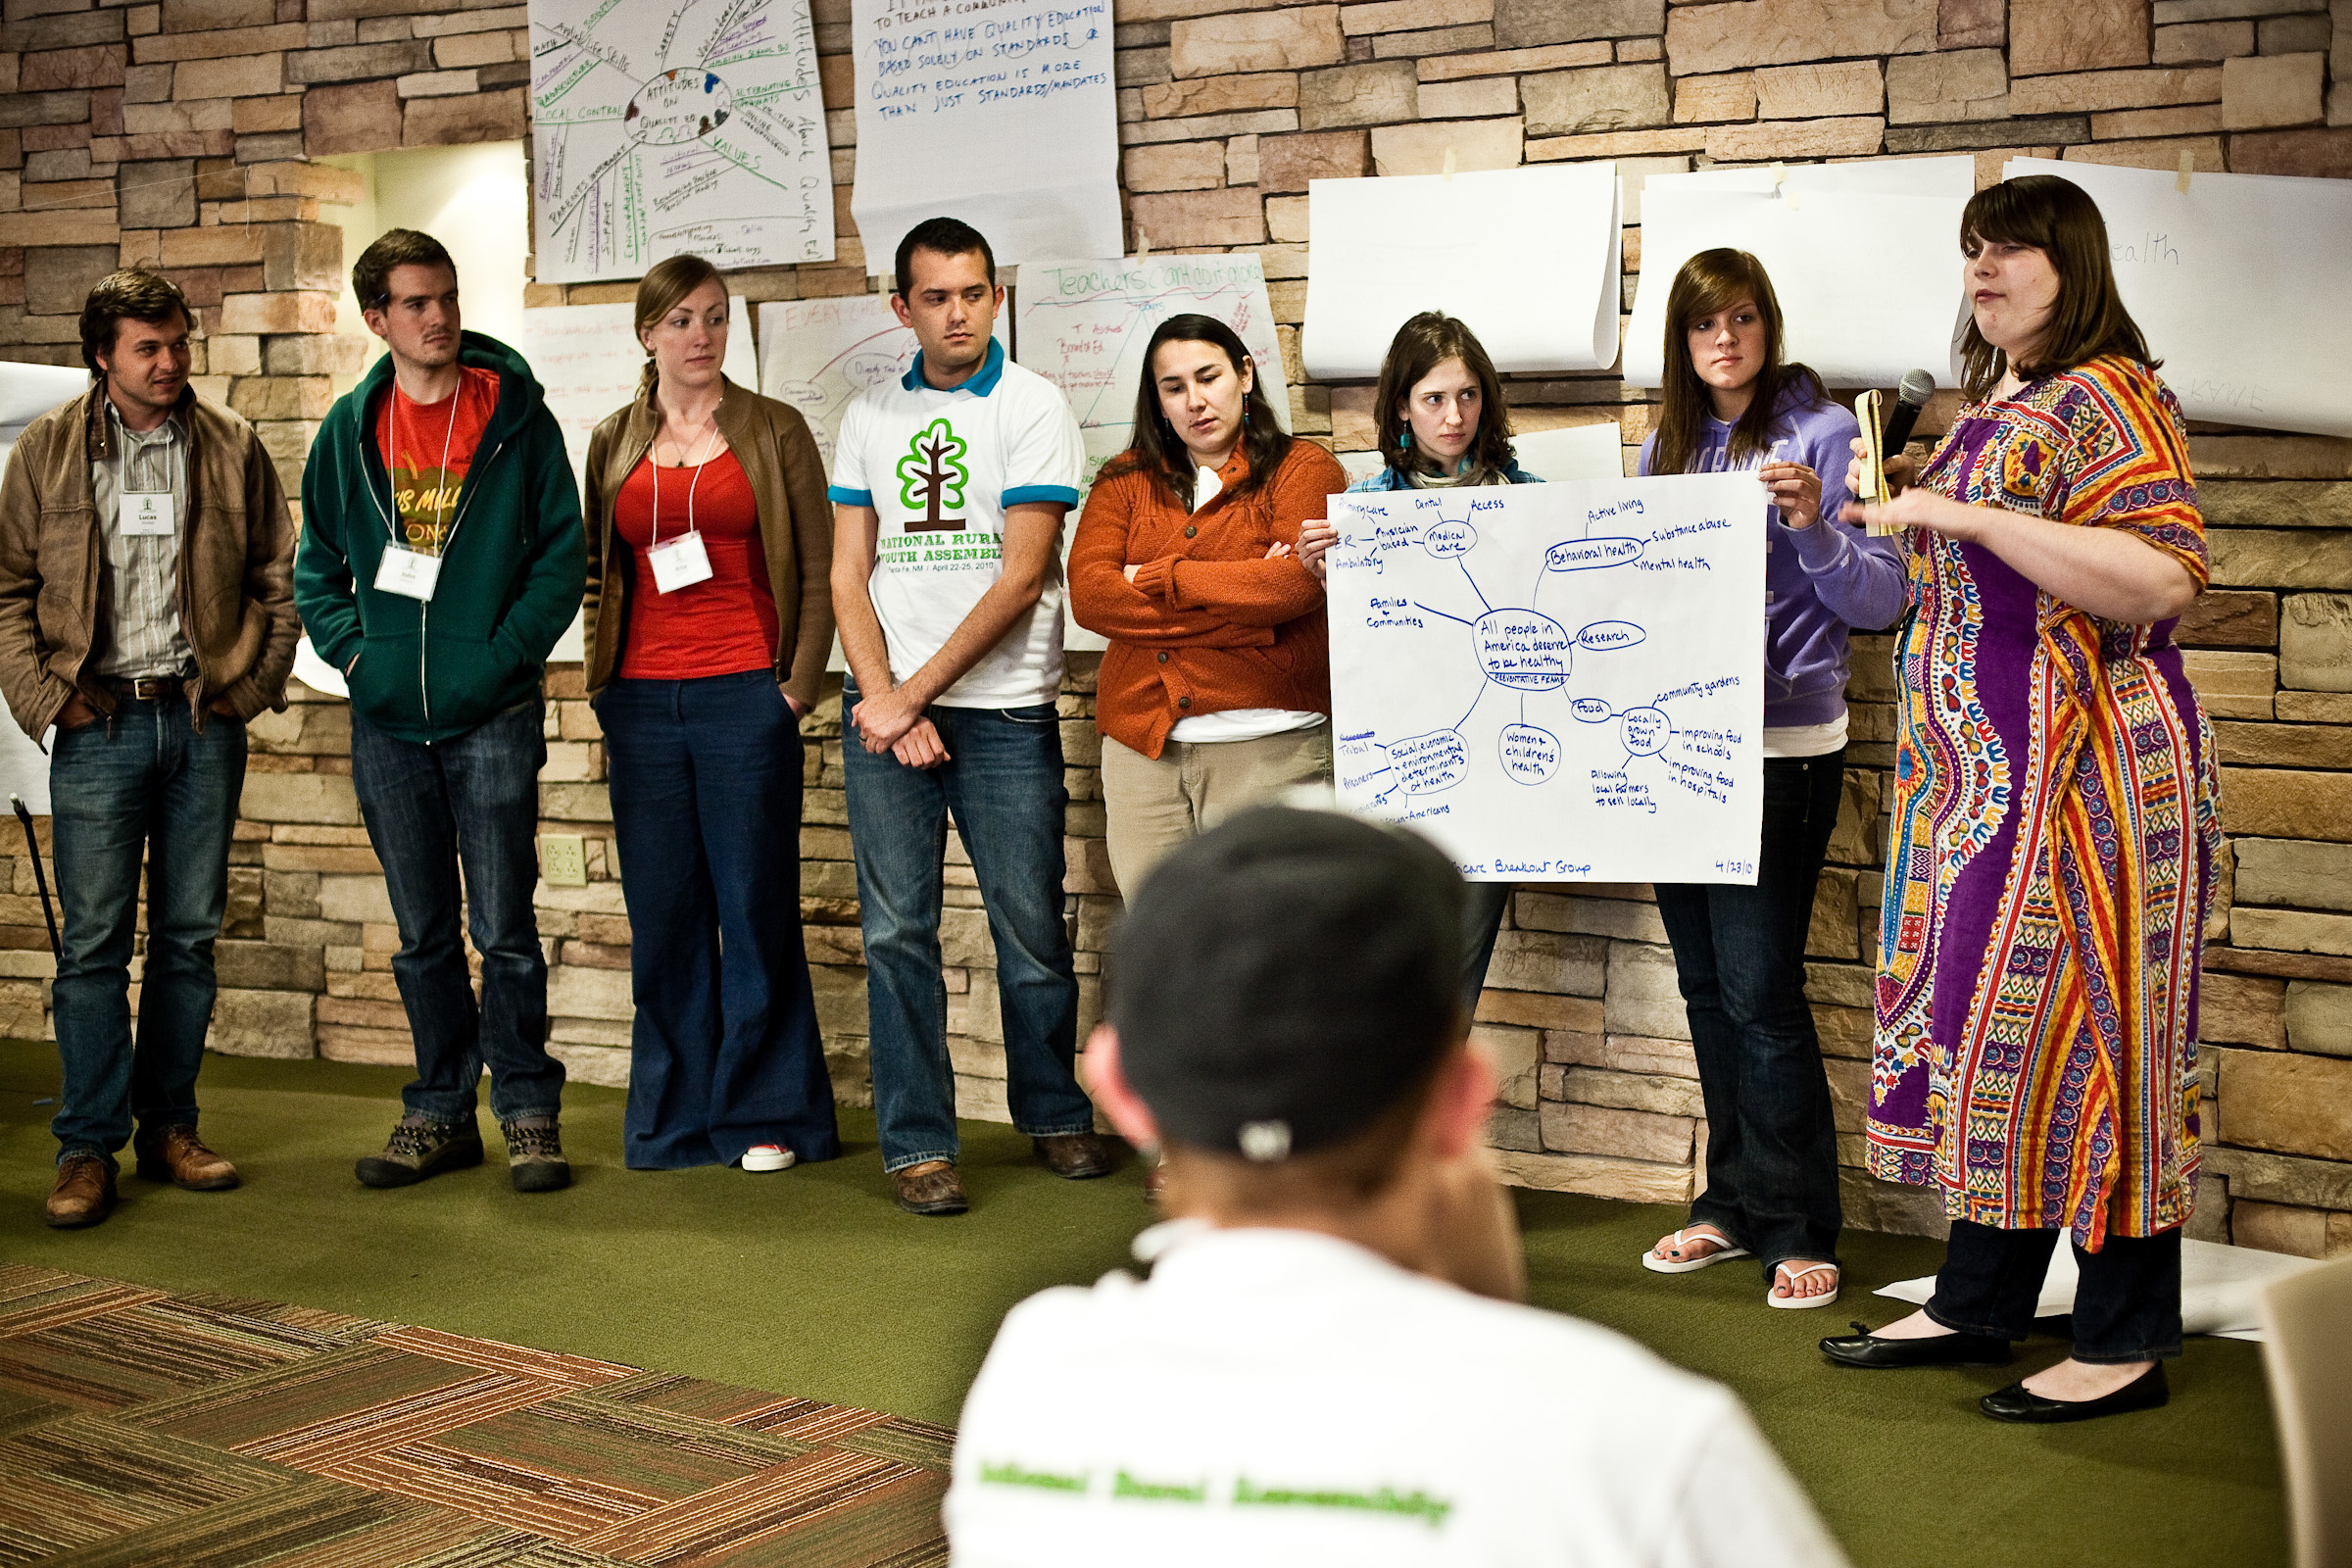 Participants presenting at the 2010 Rural Youth Assembly in Santa Fe, New Mexico